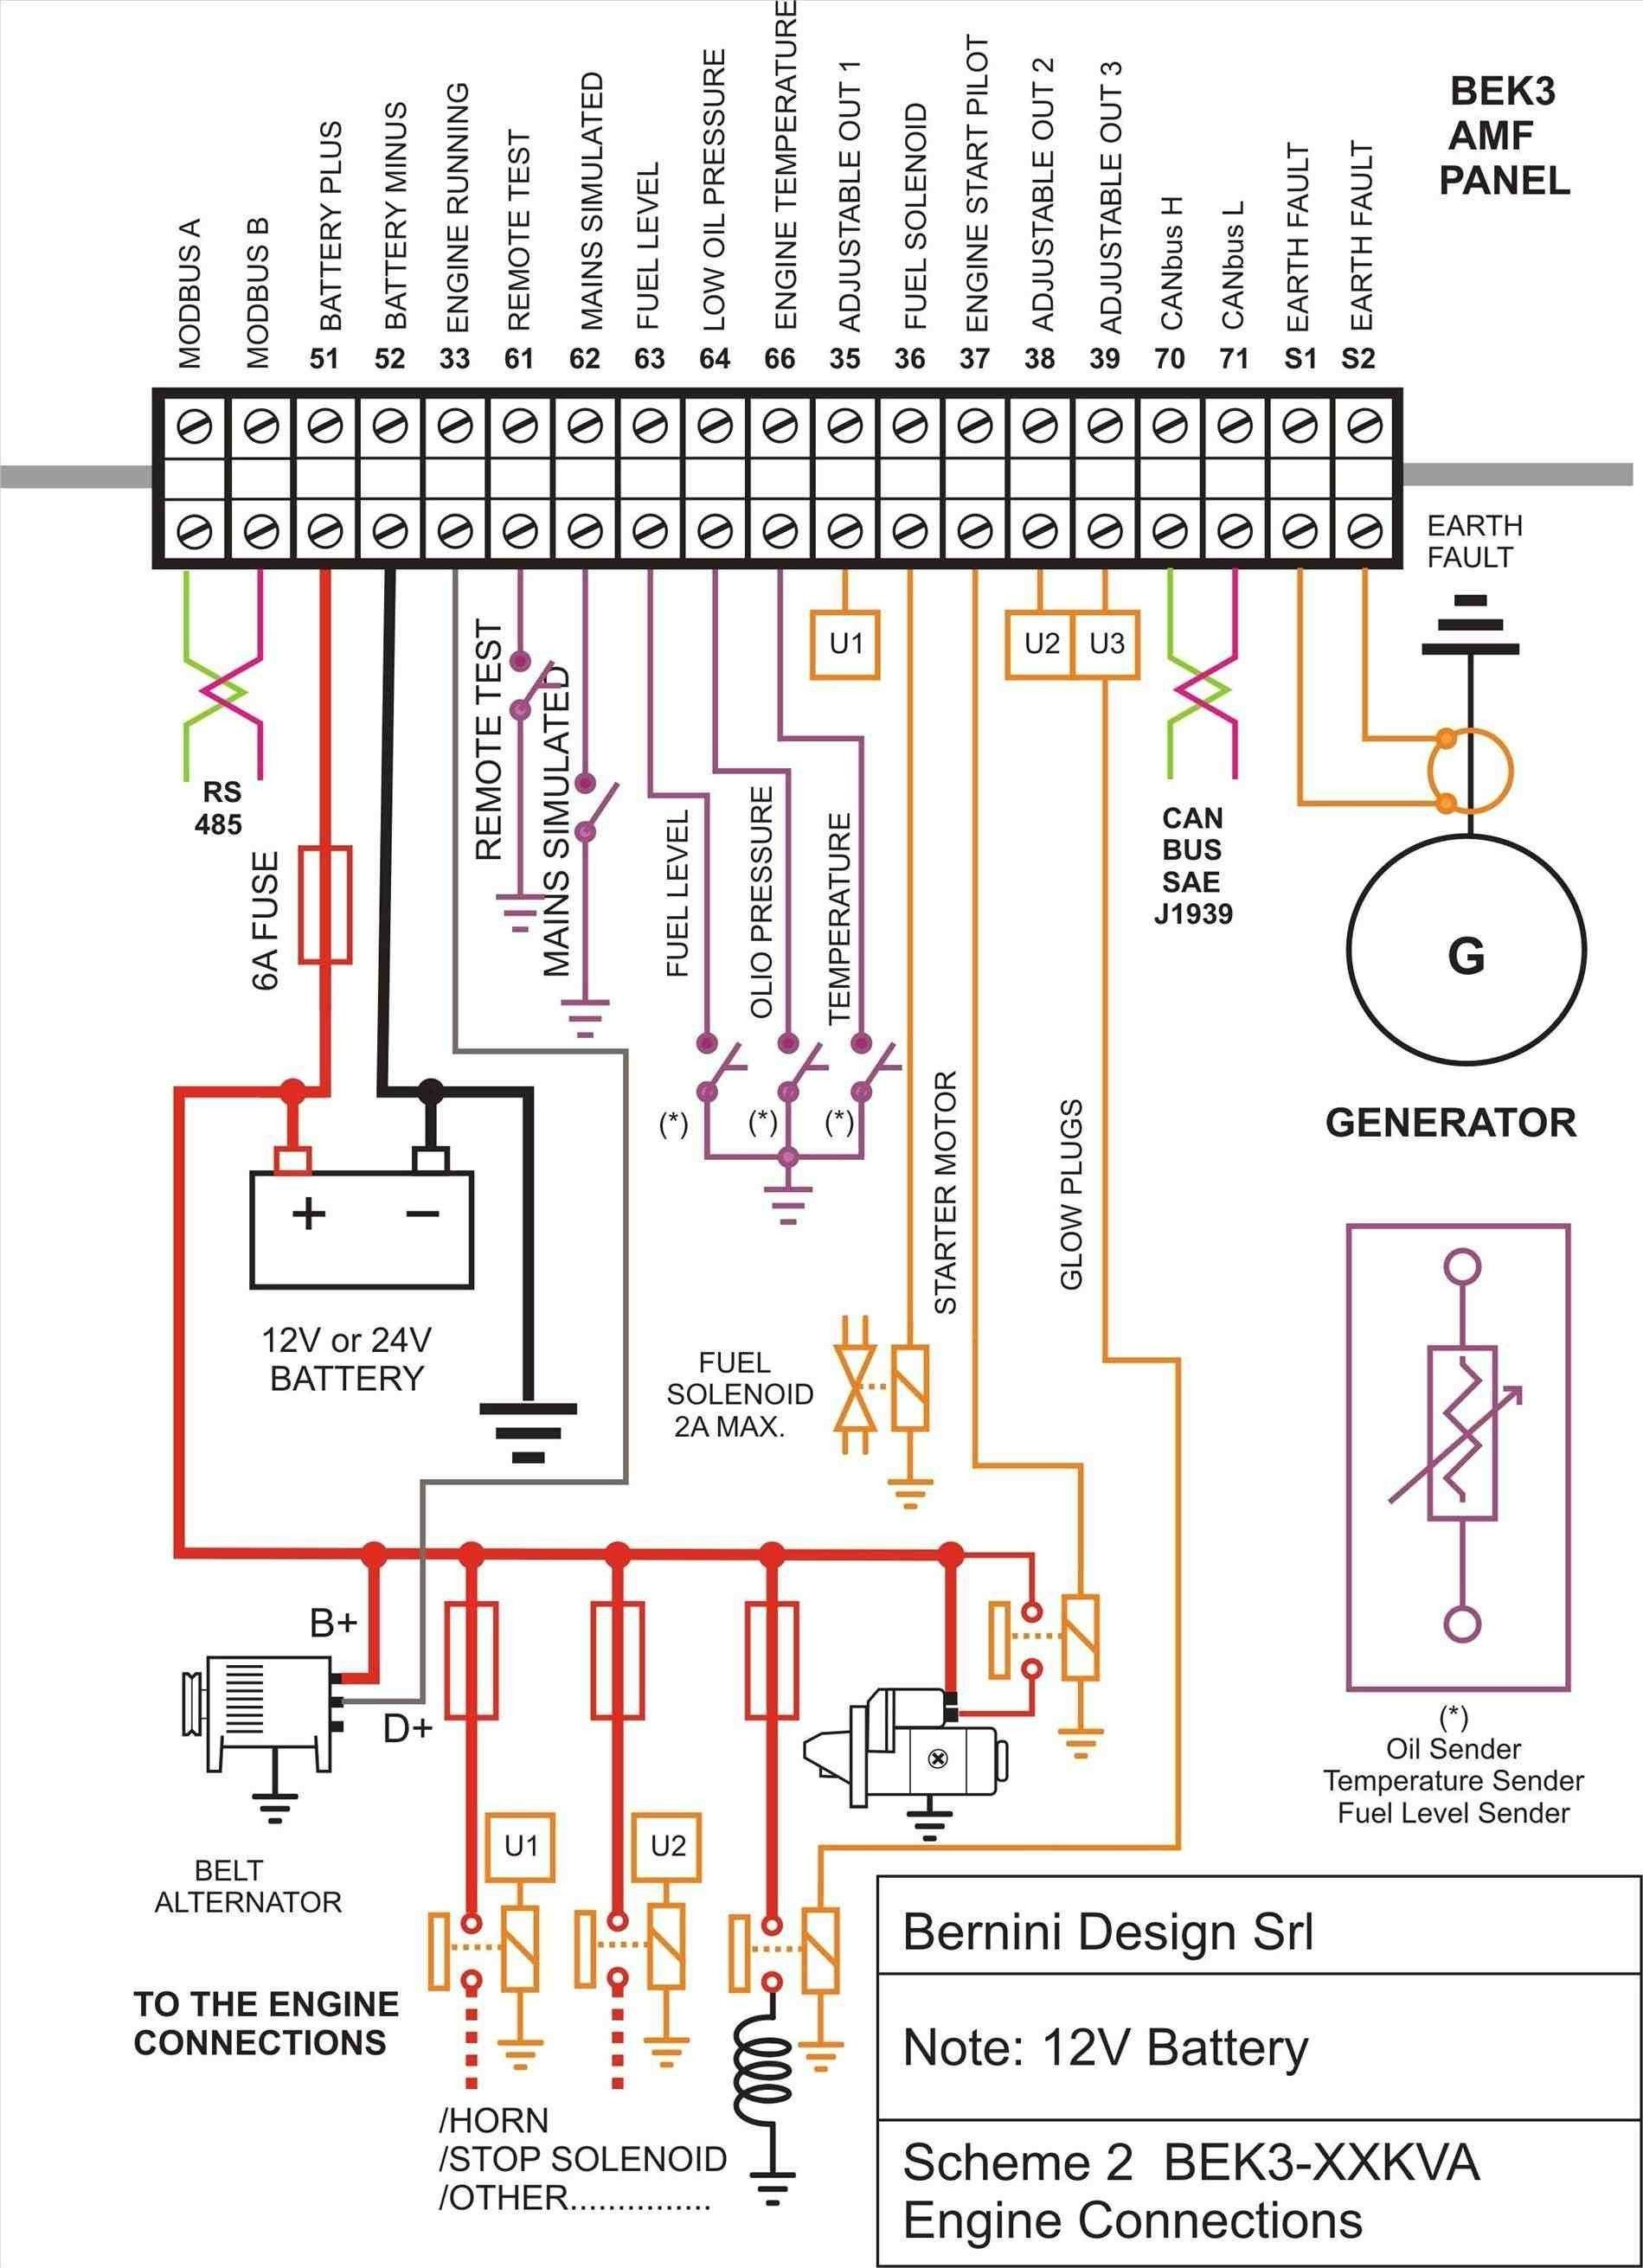 House Wiring Circuit Diagram Pdf Fresh Typical Wiring Diagram for House  Valid Nice New Circuit Diagram